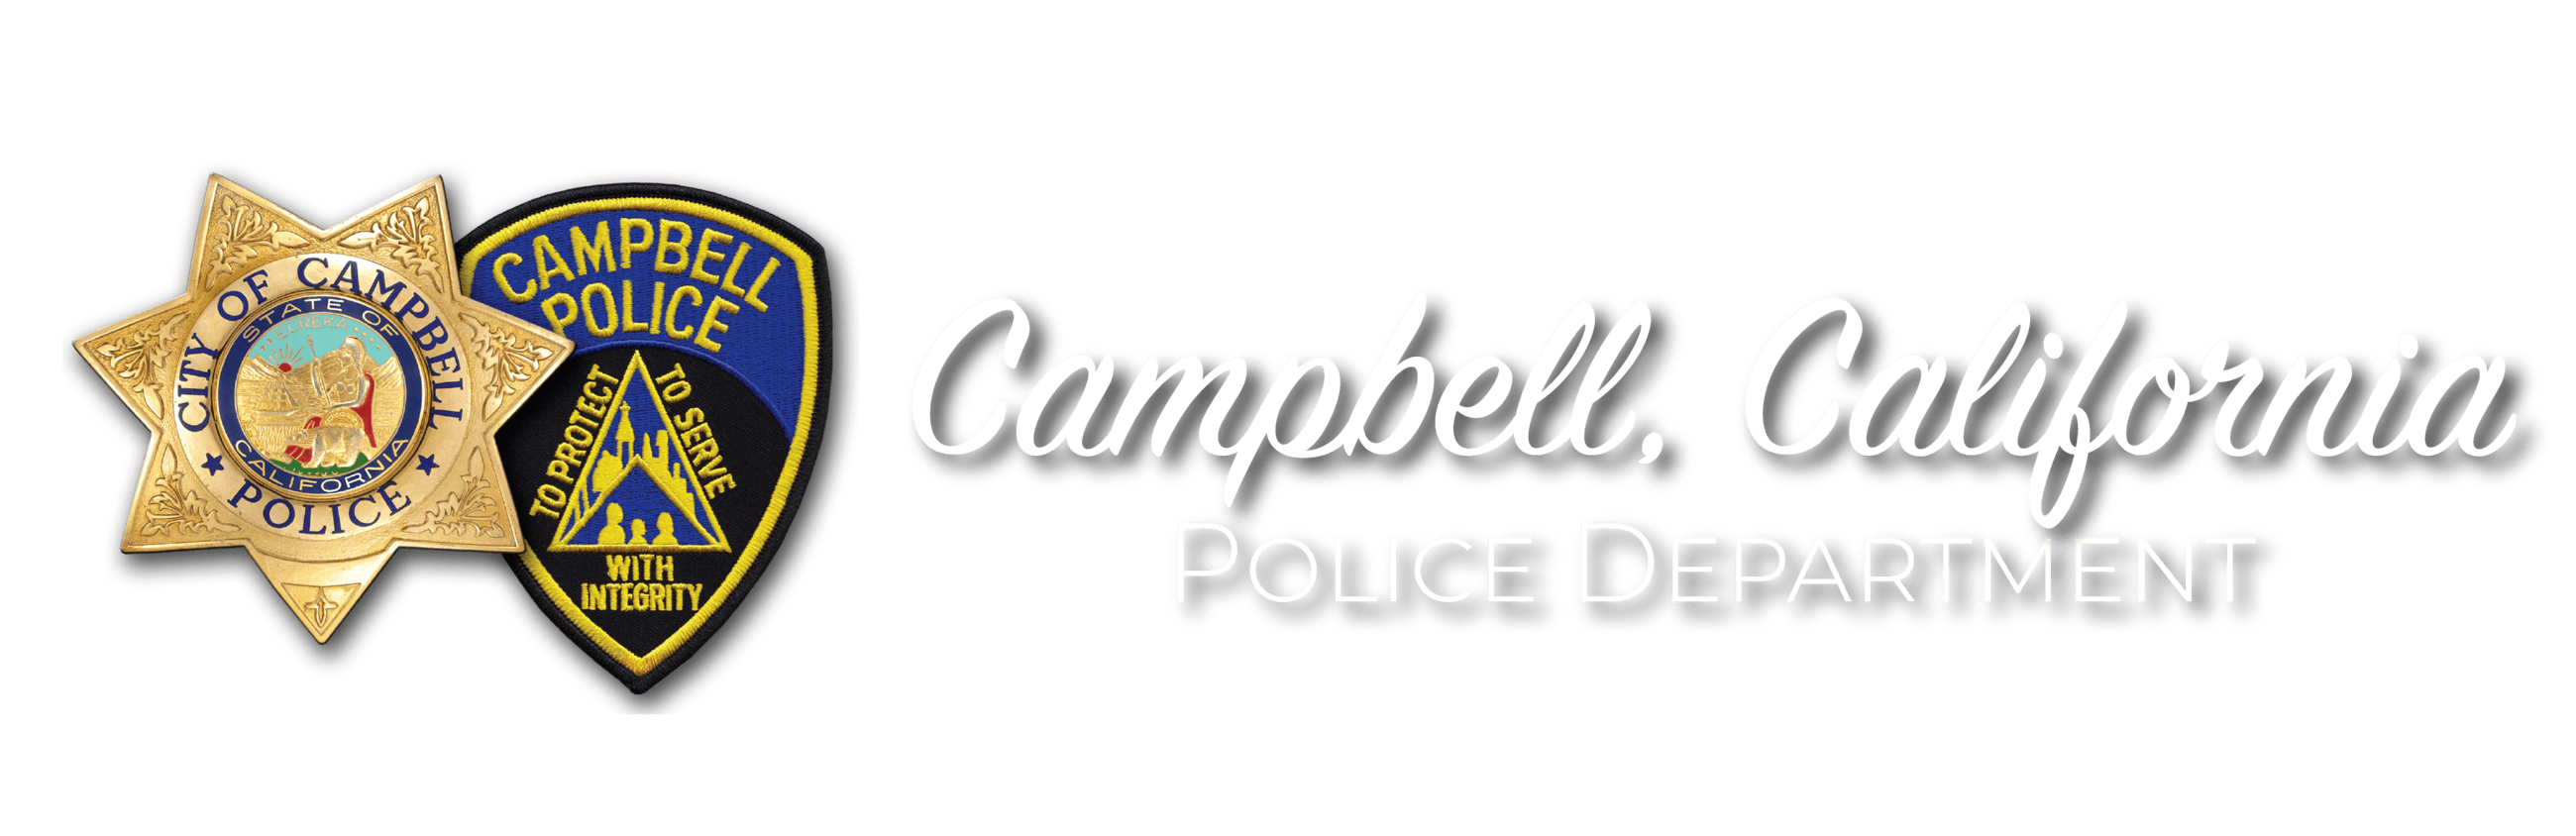 Campbell, California Police Department Homepage Icon.